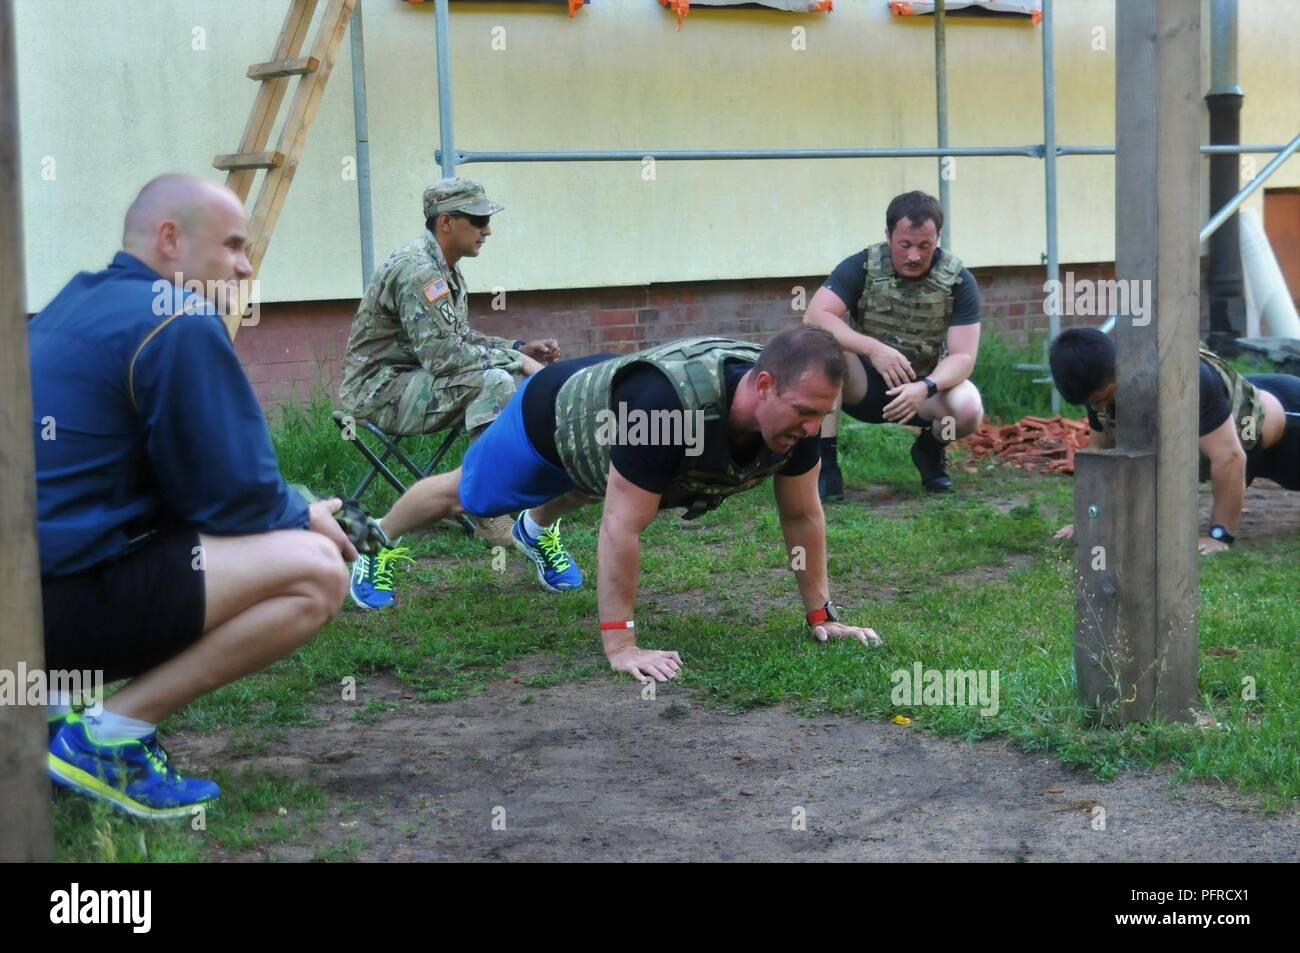 Battle Group Poland Soldiers remember Memorial Day by competing in the Murph Challenge in honor of the fallen who gave the ultimate sacrifice in defense of the nation on Bemowo Piskie Training Area, on May 28, 2018. These Soldiers are part of the unique, multinational battle group comprised of U.S., U.K., Croatian and Romanian soldiers who serve with the Polish 15th Mechanized Brigade as a deterrence force in northeast Poland in support of NATO's Enhanced Forward Presence. Stock Photo